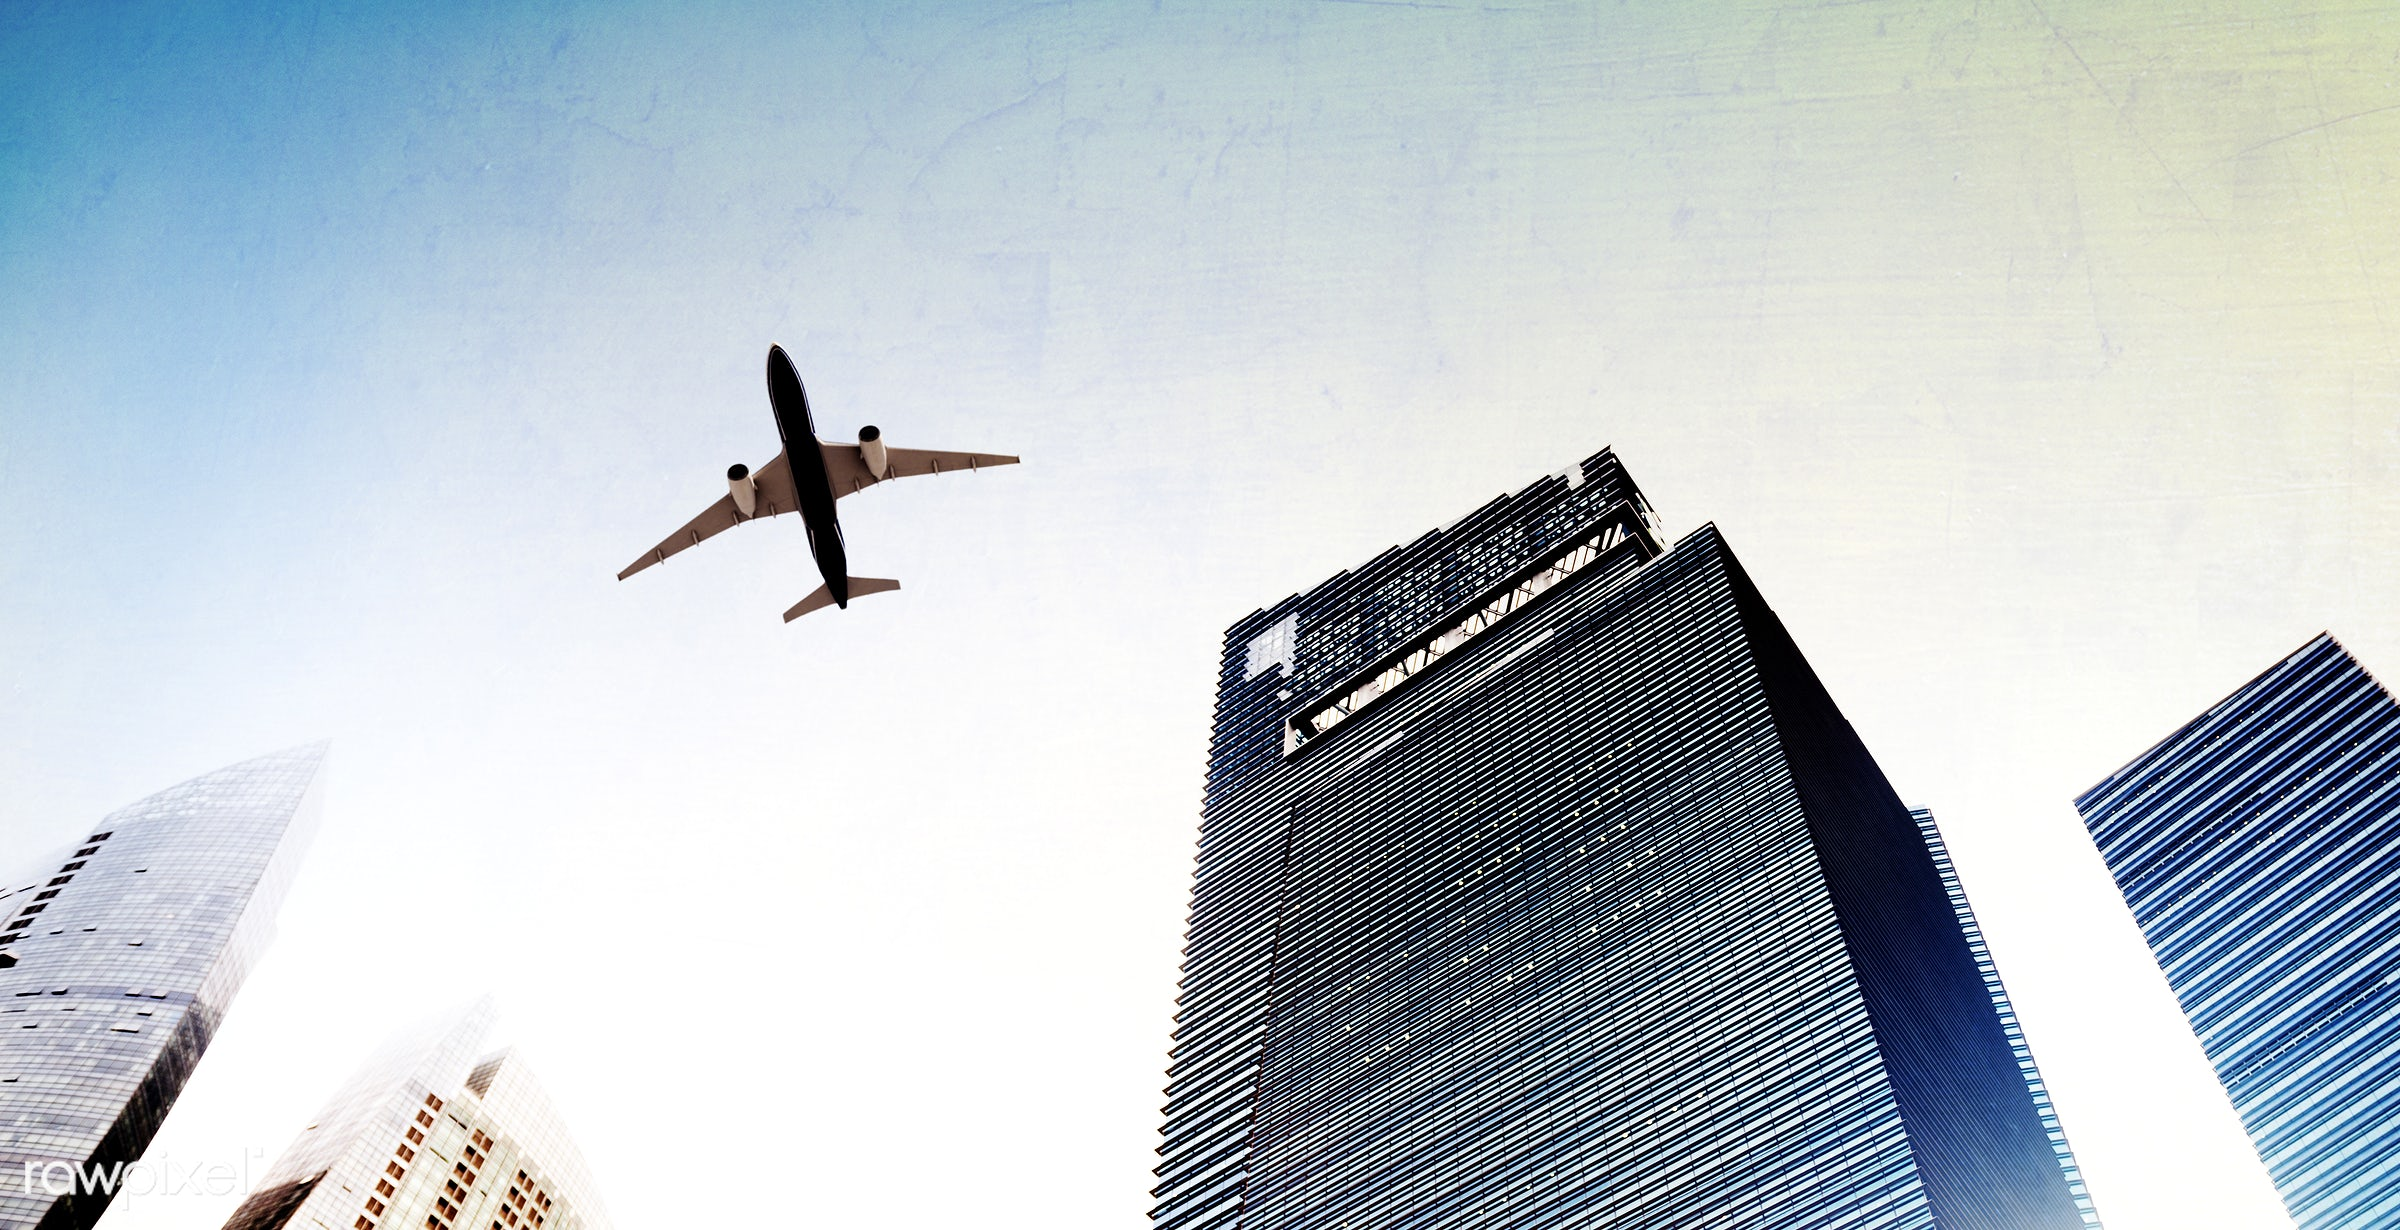 abstract, aeroplane, aircraft, airliner, airplane, architecture, aviation, building, buildings, business, business travel,...